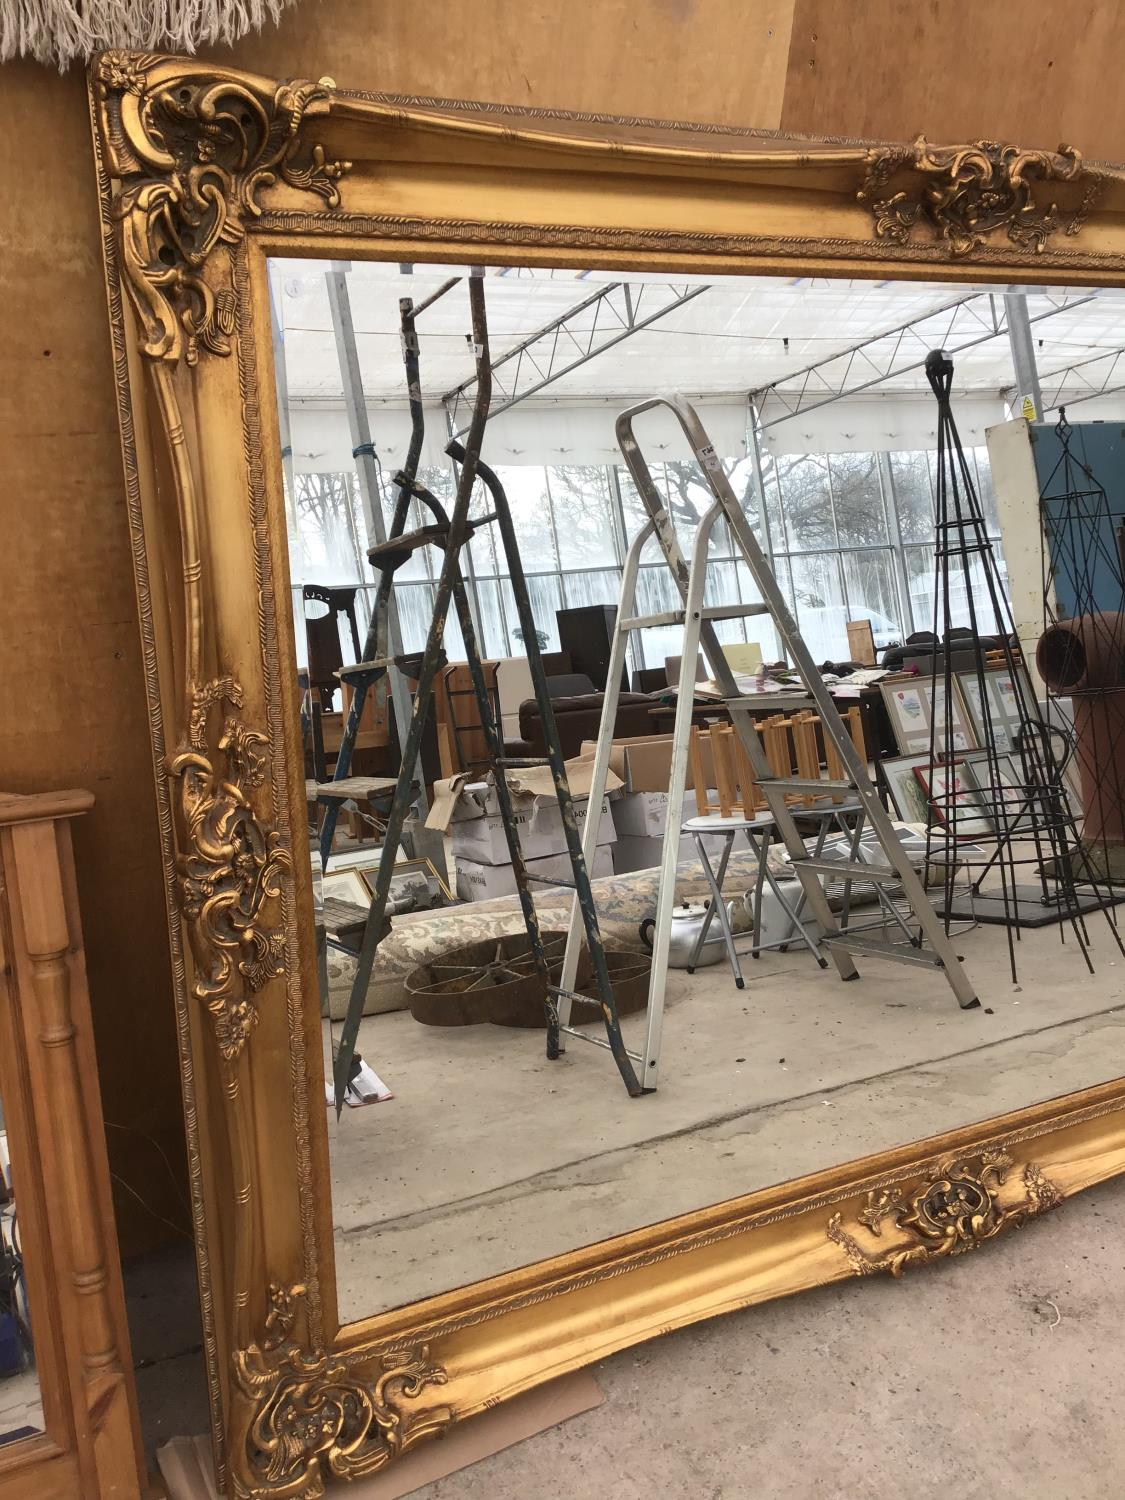 Lot 1 - A VERY LARGE ORNATE GILT FRAMED MIRROR 214CM X 154CM